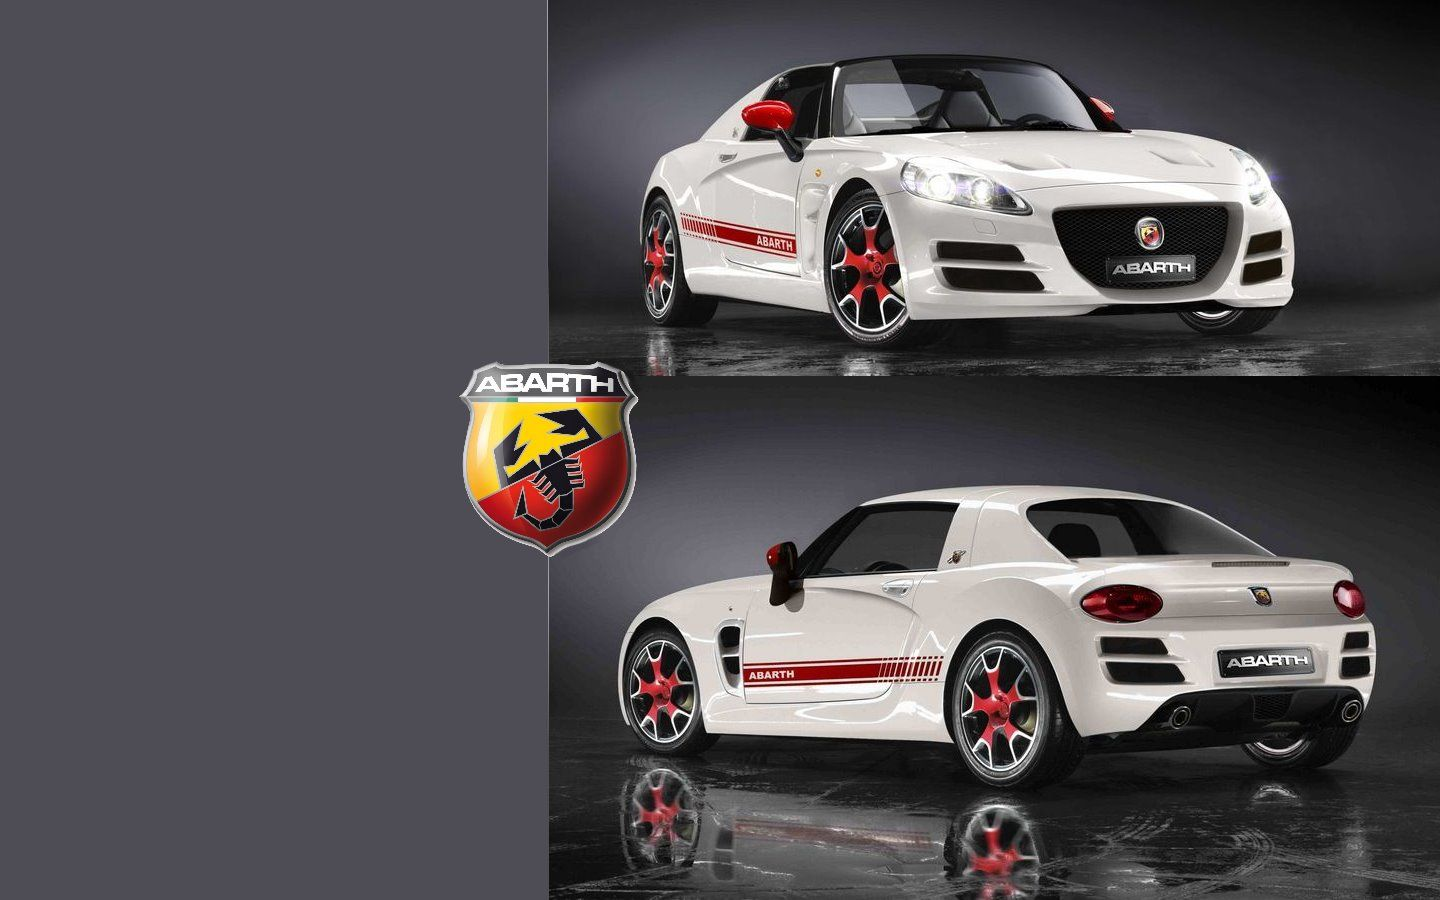 Fiat Abarth Coupé | Fiat and Abarth | Pinterest | Fiat abarth, Fiat